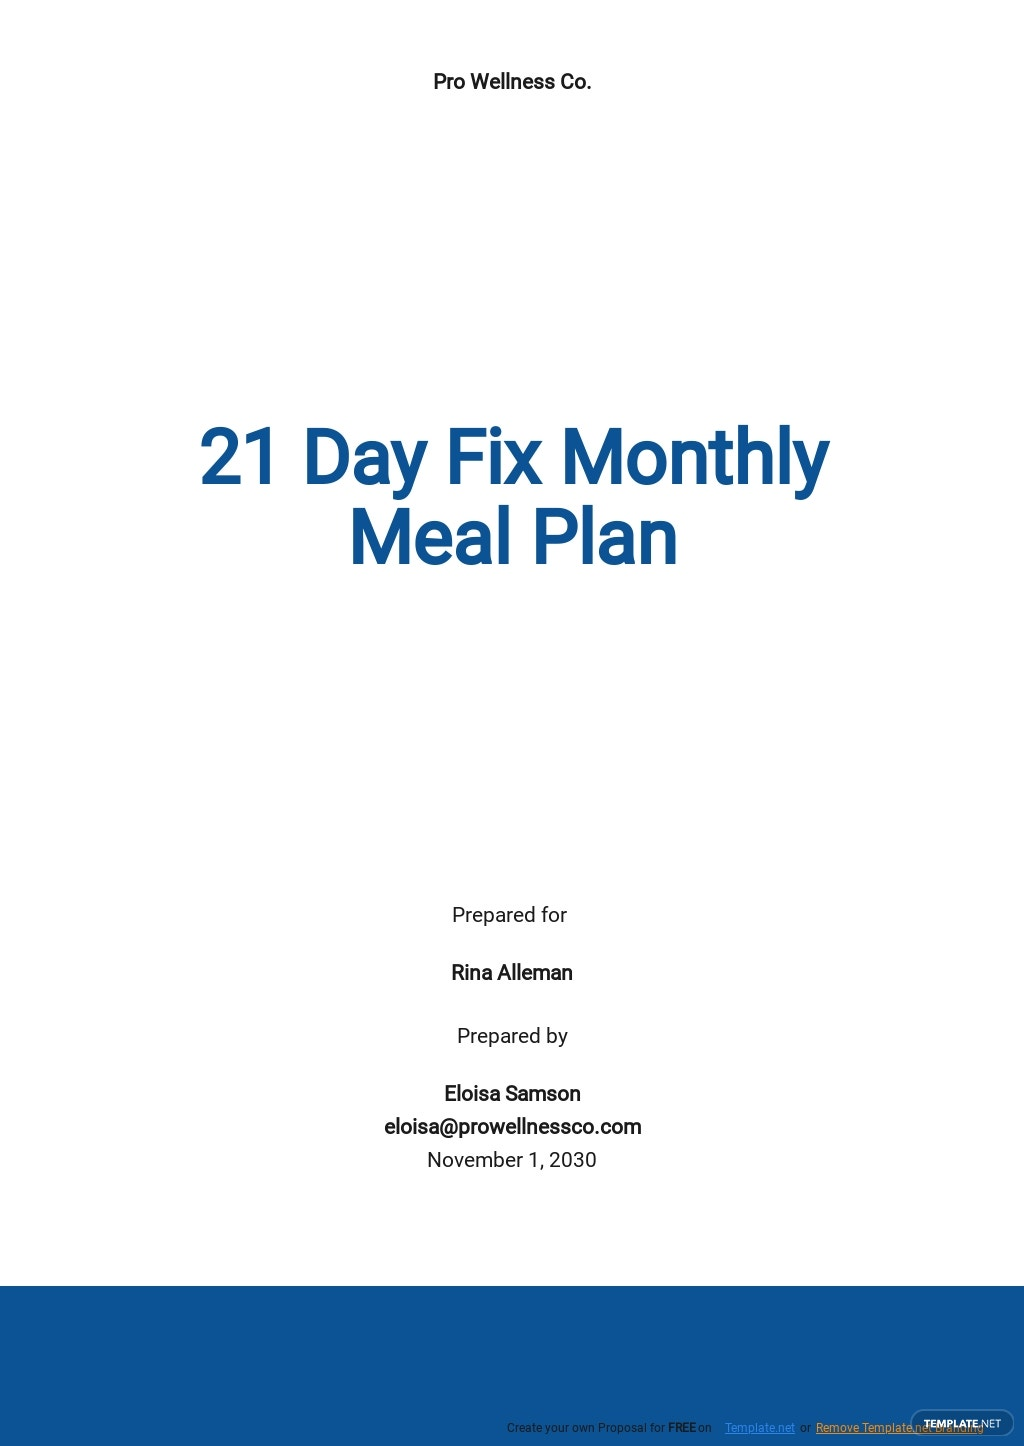 21 Day Fix Monthly Meal Plan Template.jpe